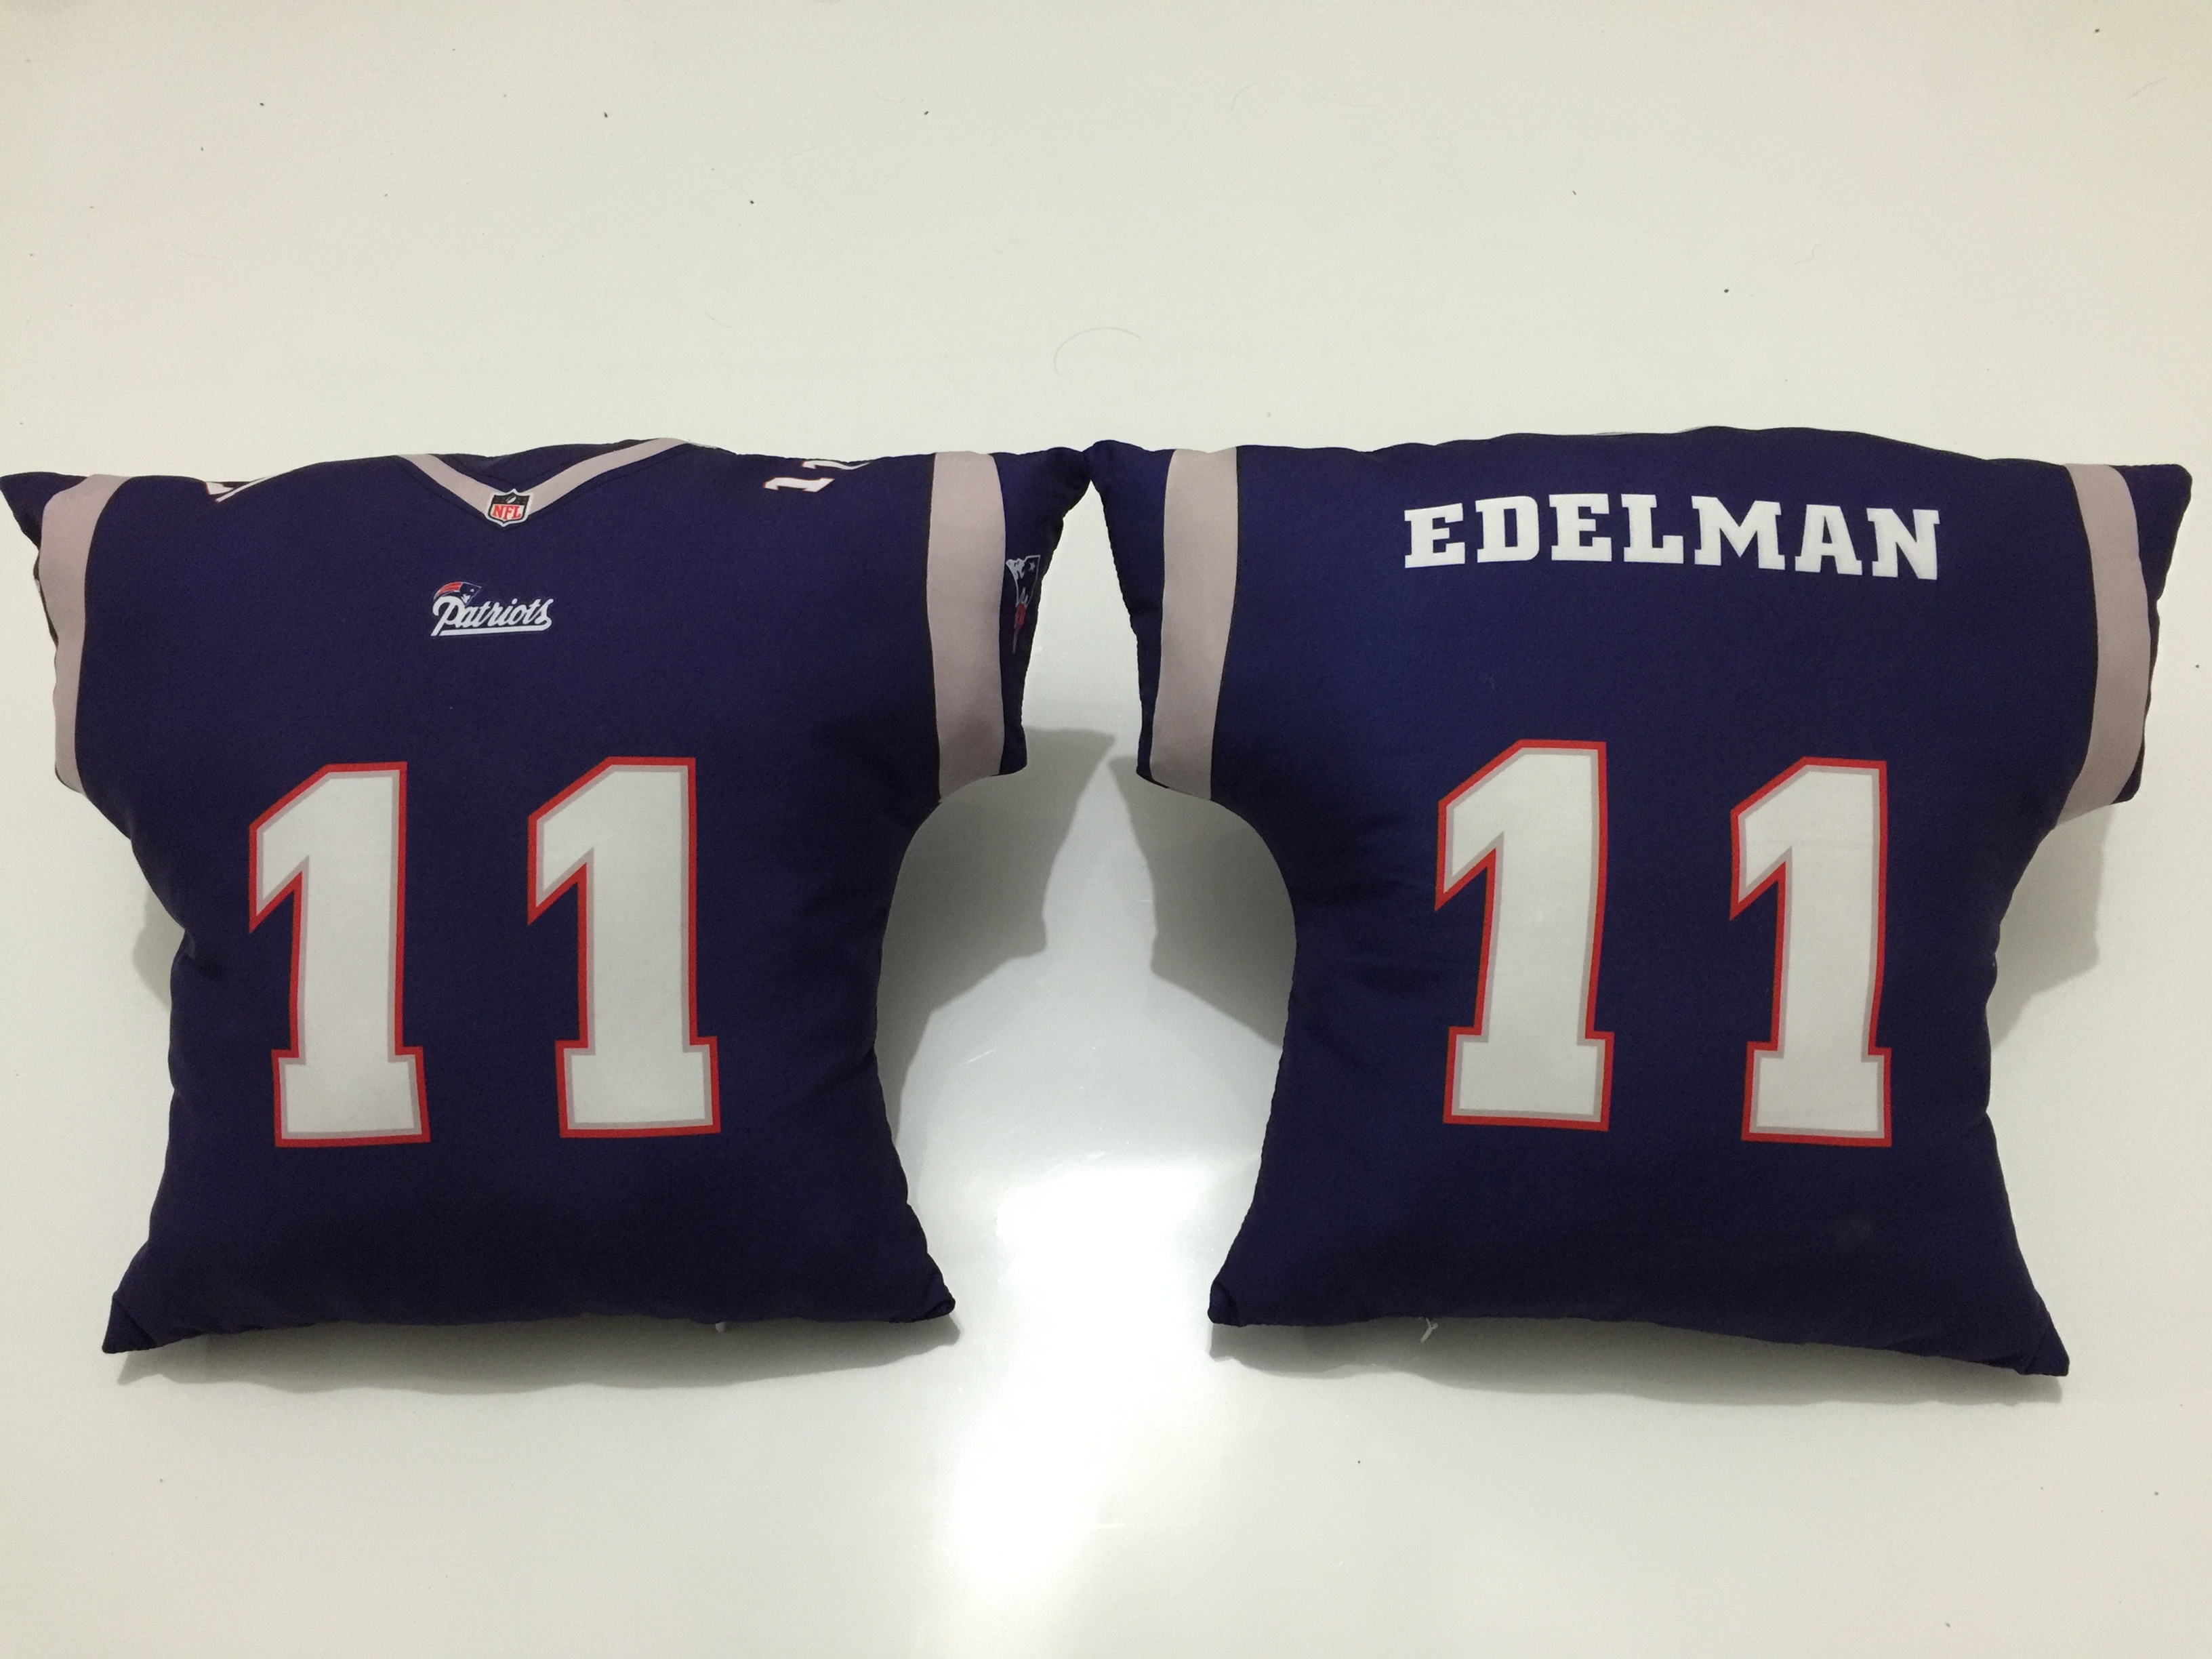 New England Patriots 11 Julian Edelman Navy NFL Pillow